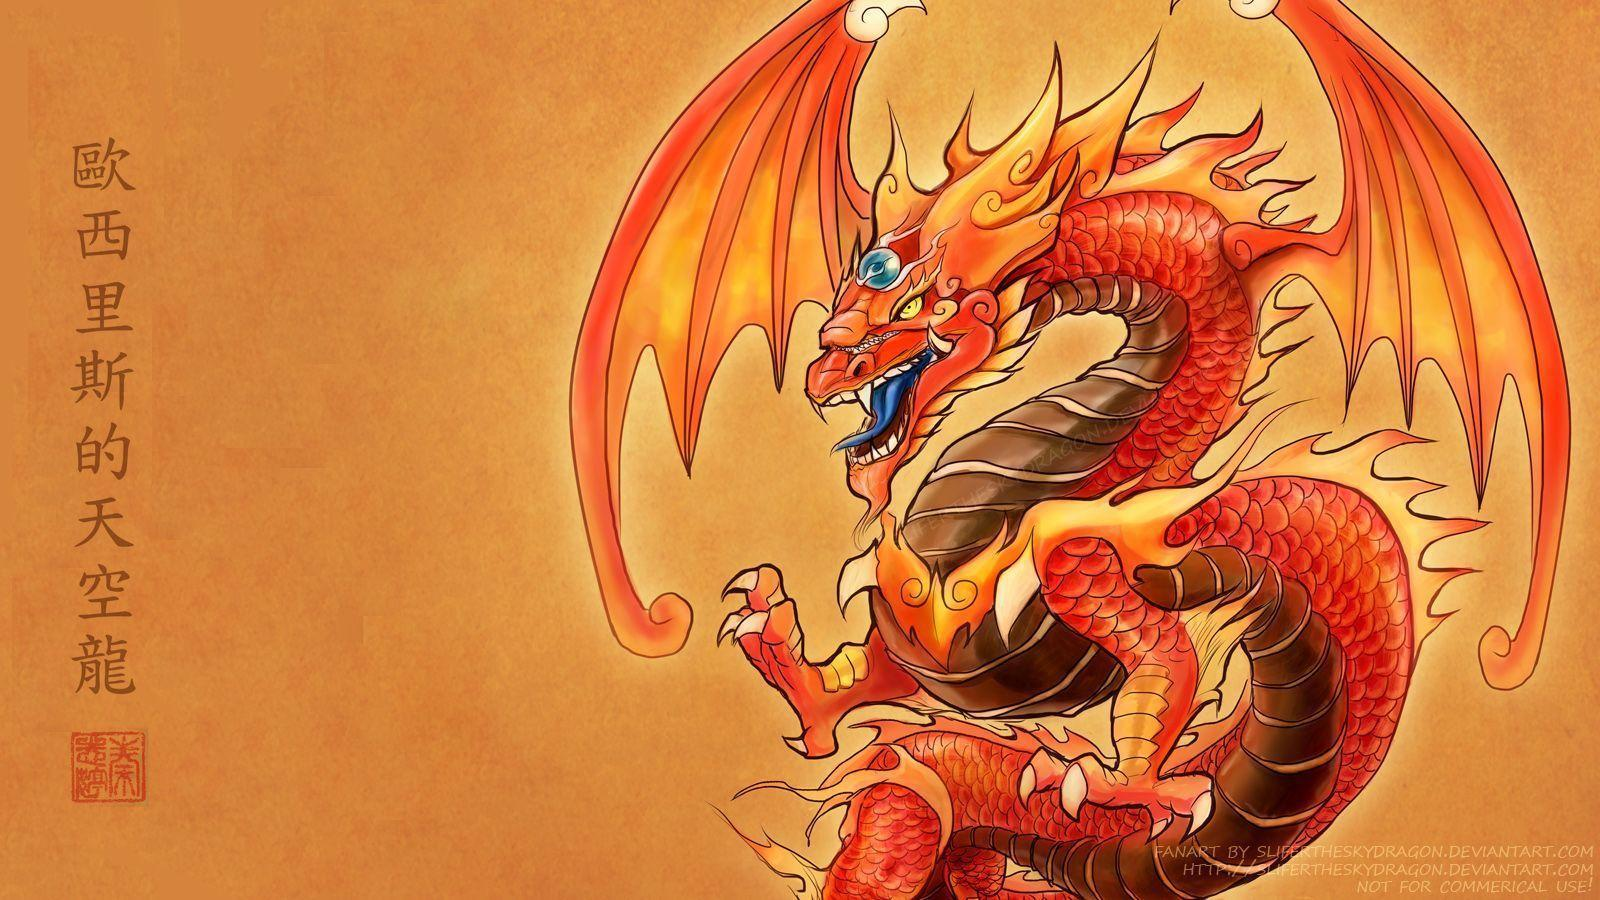 20 free and stunning dragon wallpaper collection - HD 1600×900